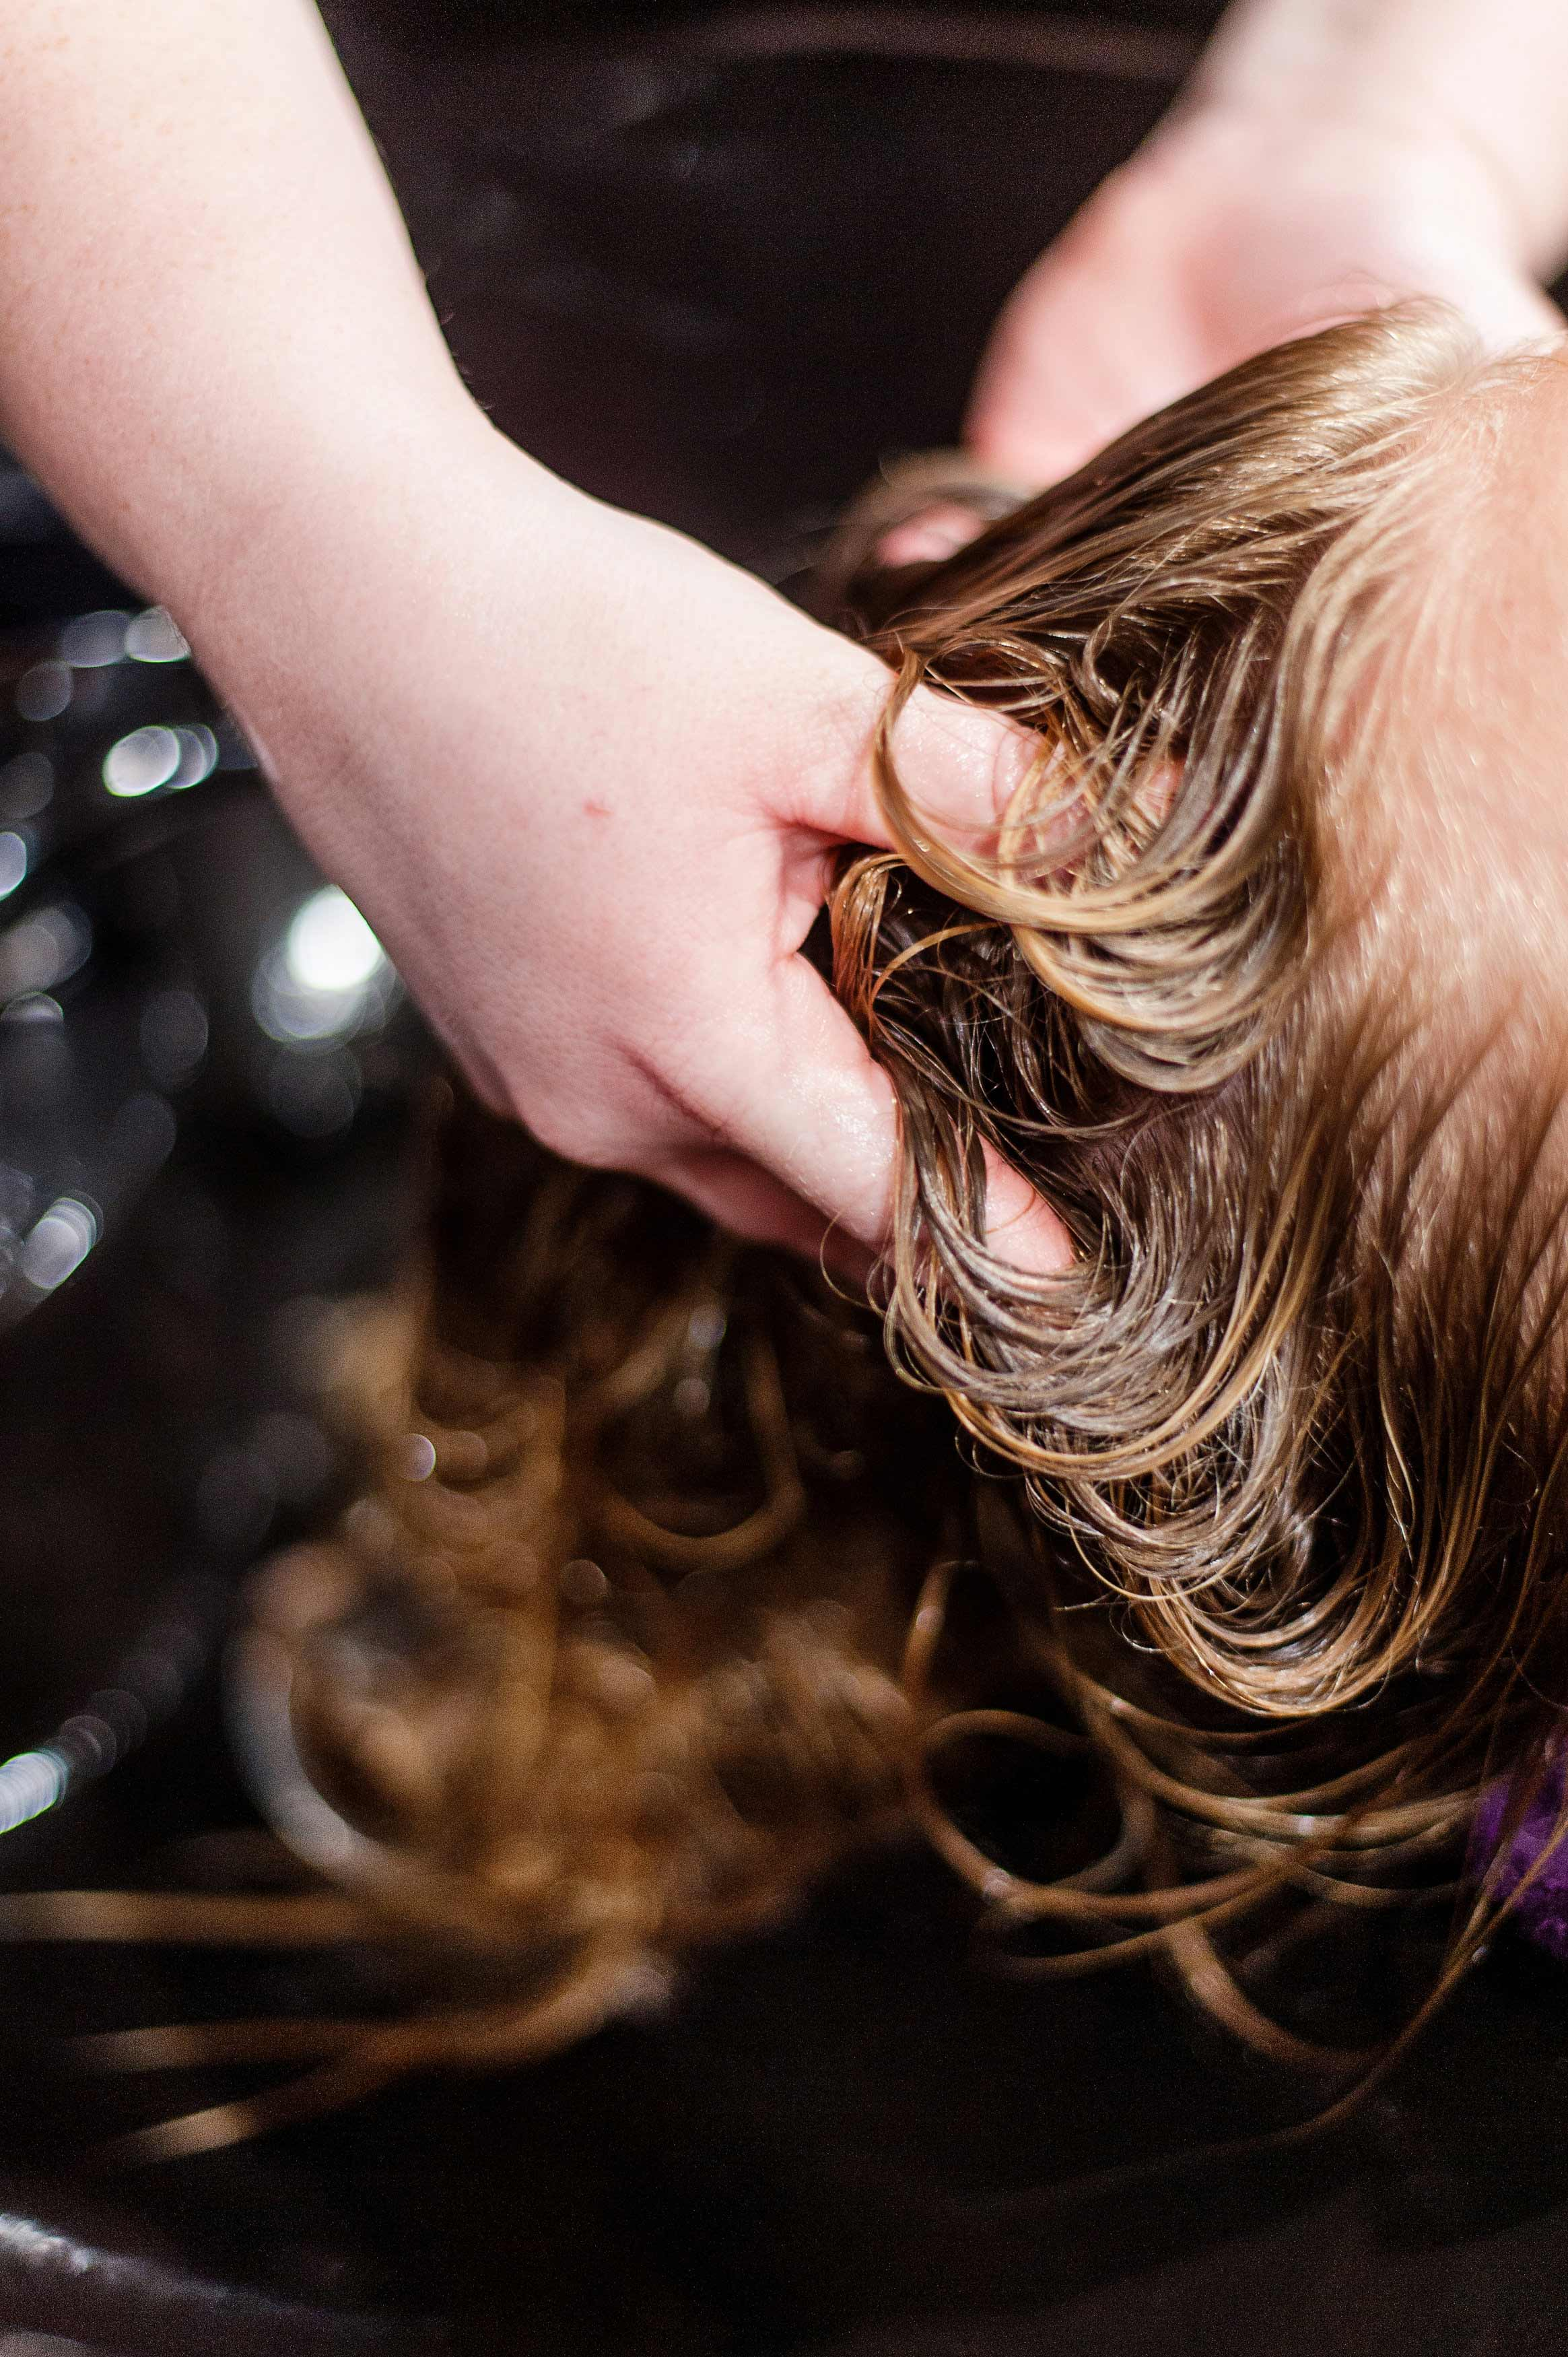 hair-washing-services-full-service-salon-fredericksburg-va.jpg